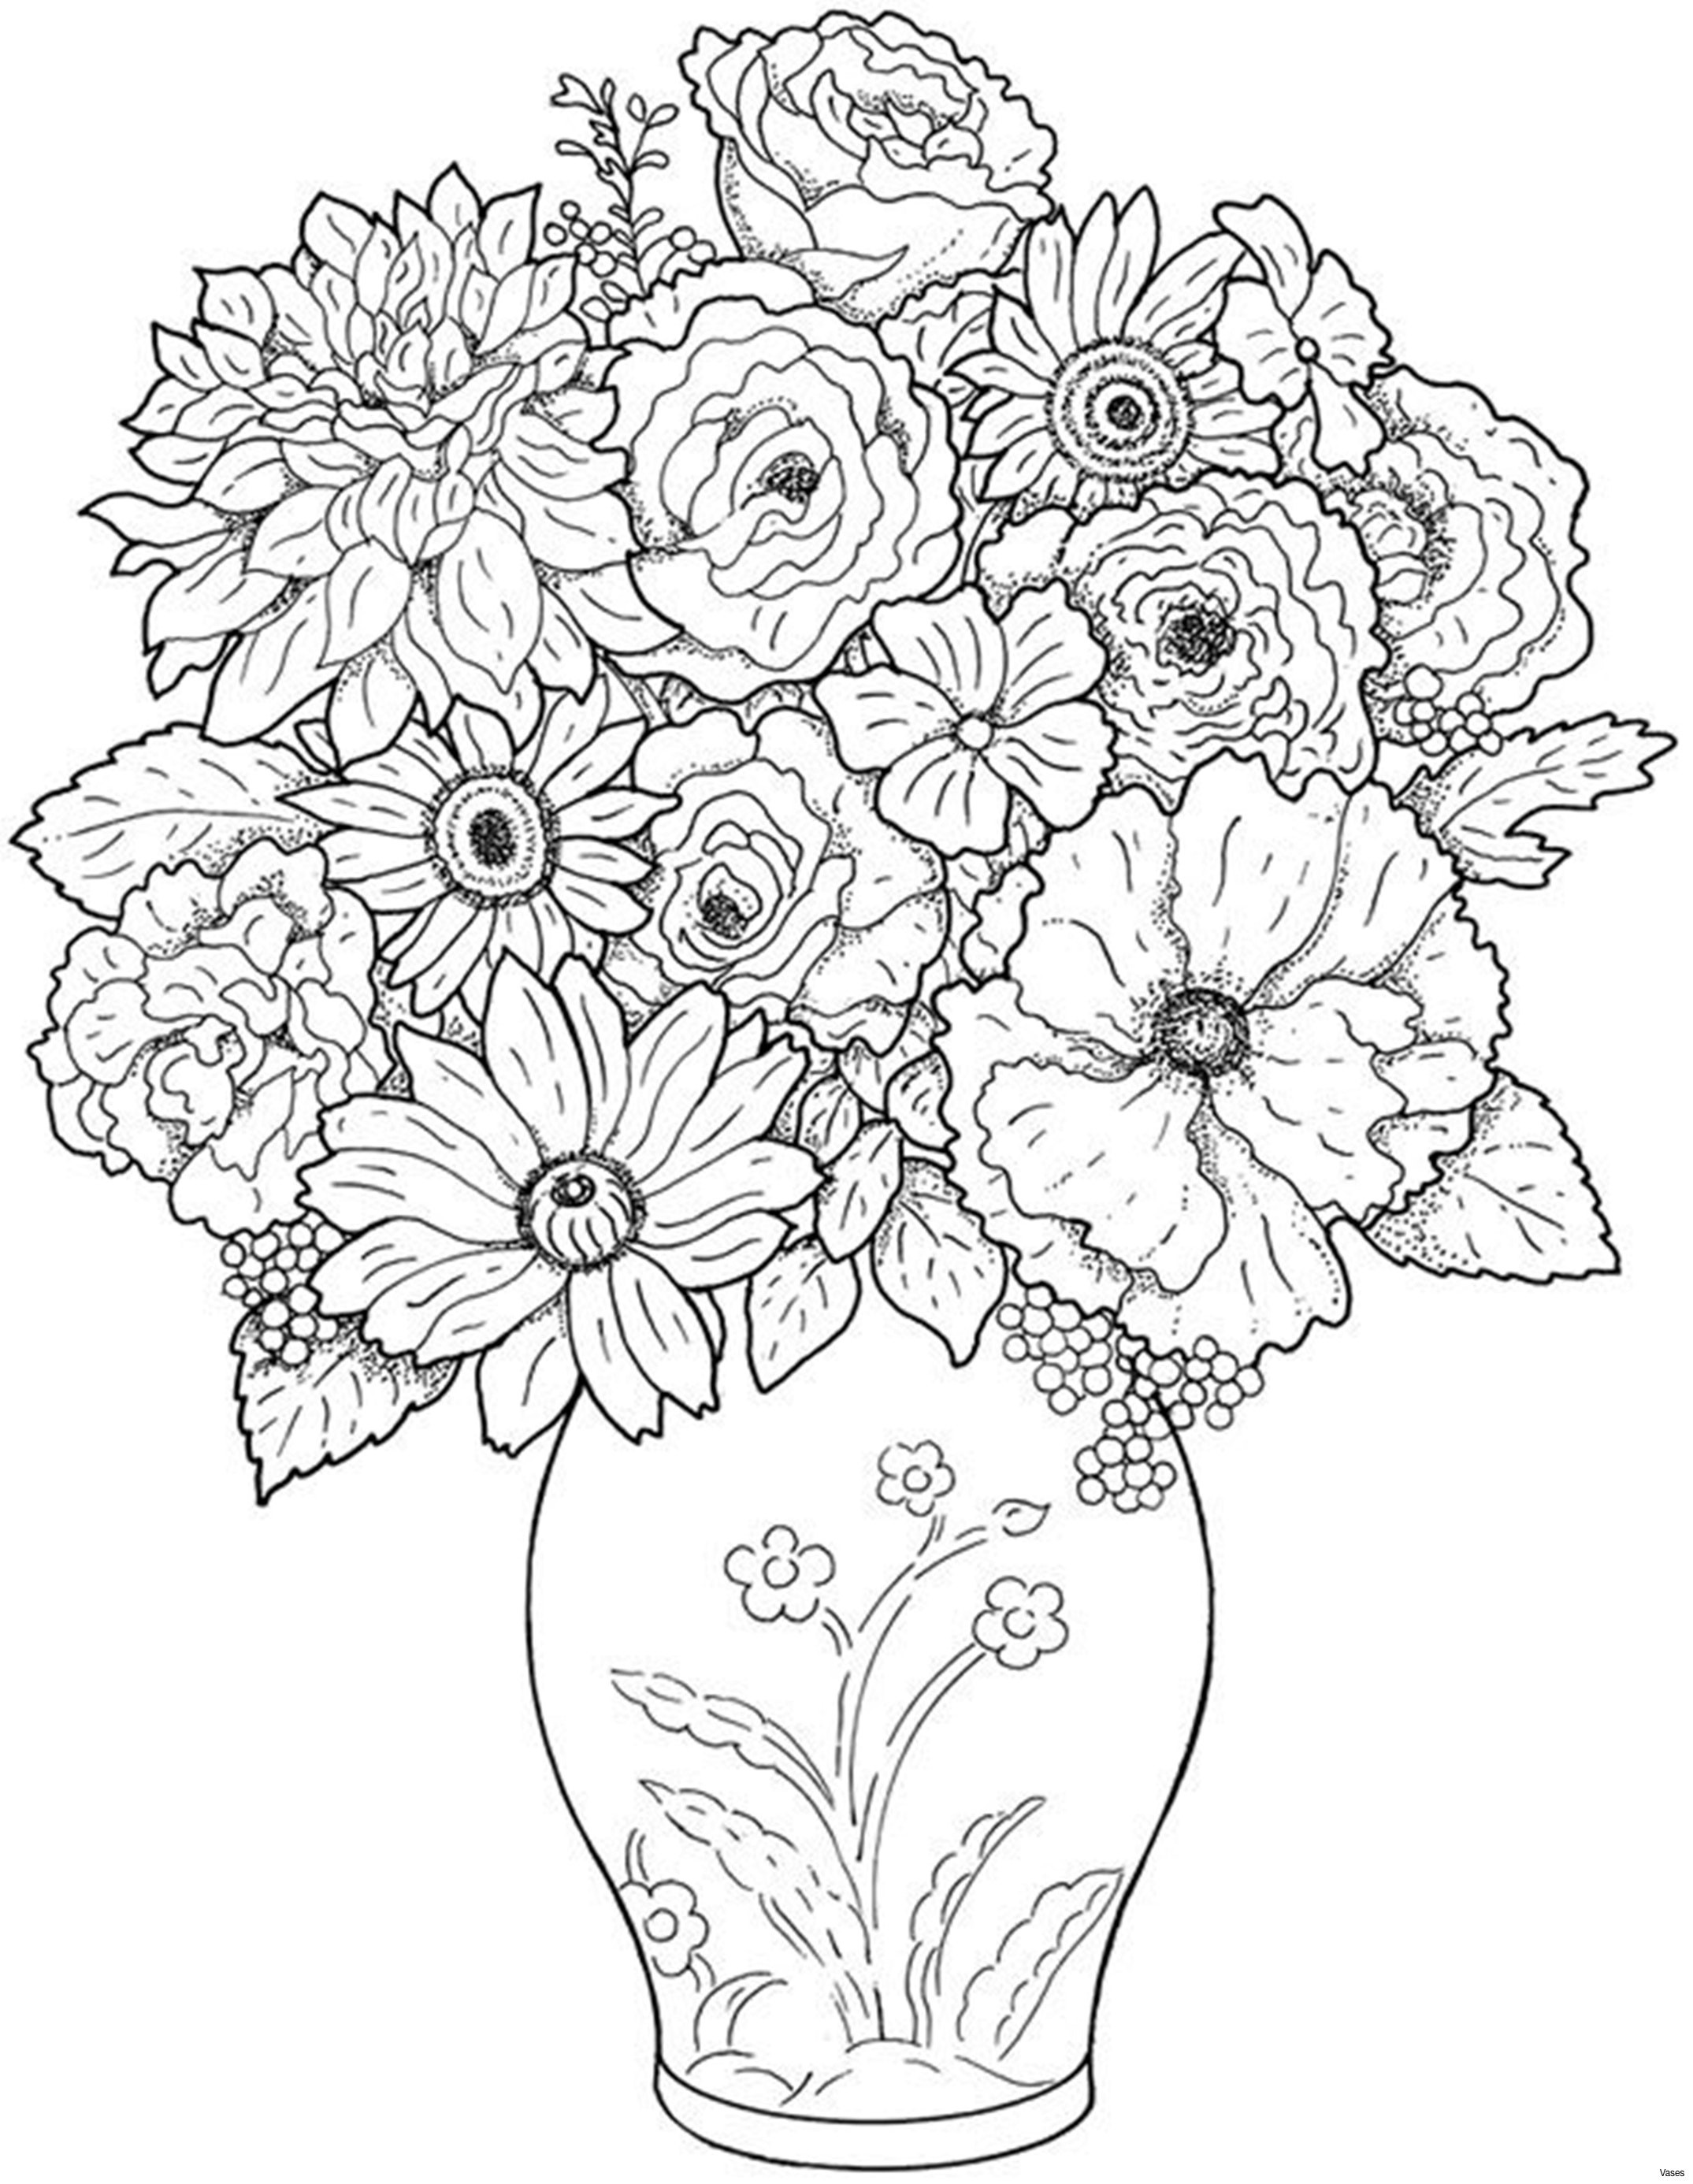 white vases for centerpieces of new gray flowers yepigames me in cool vases flower vase coloring page pages flowers in a top i 0d